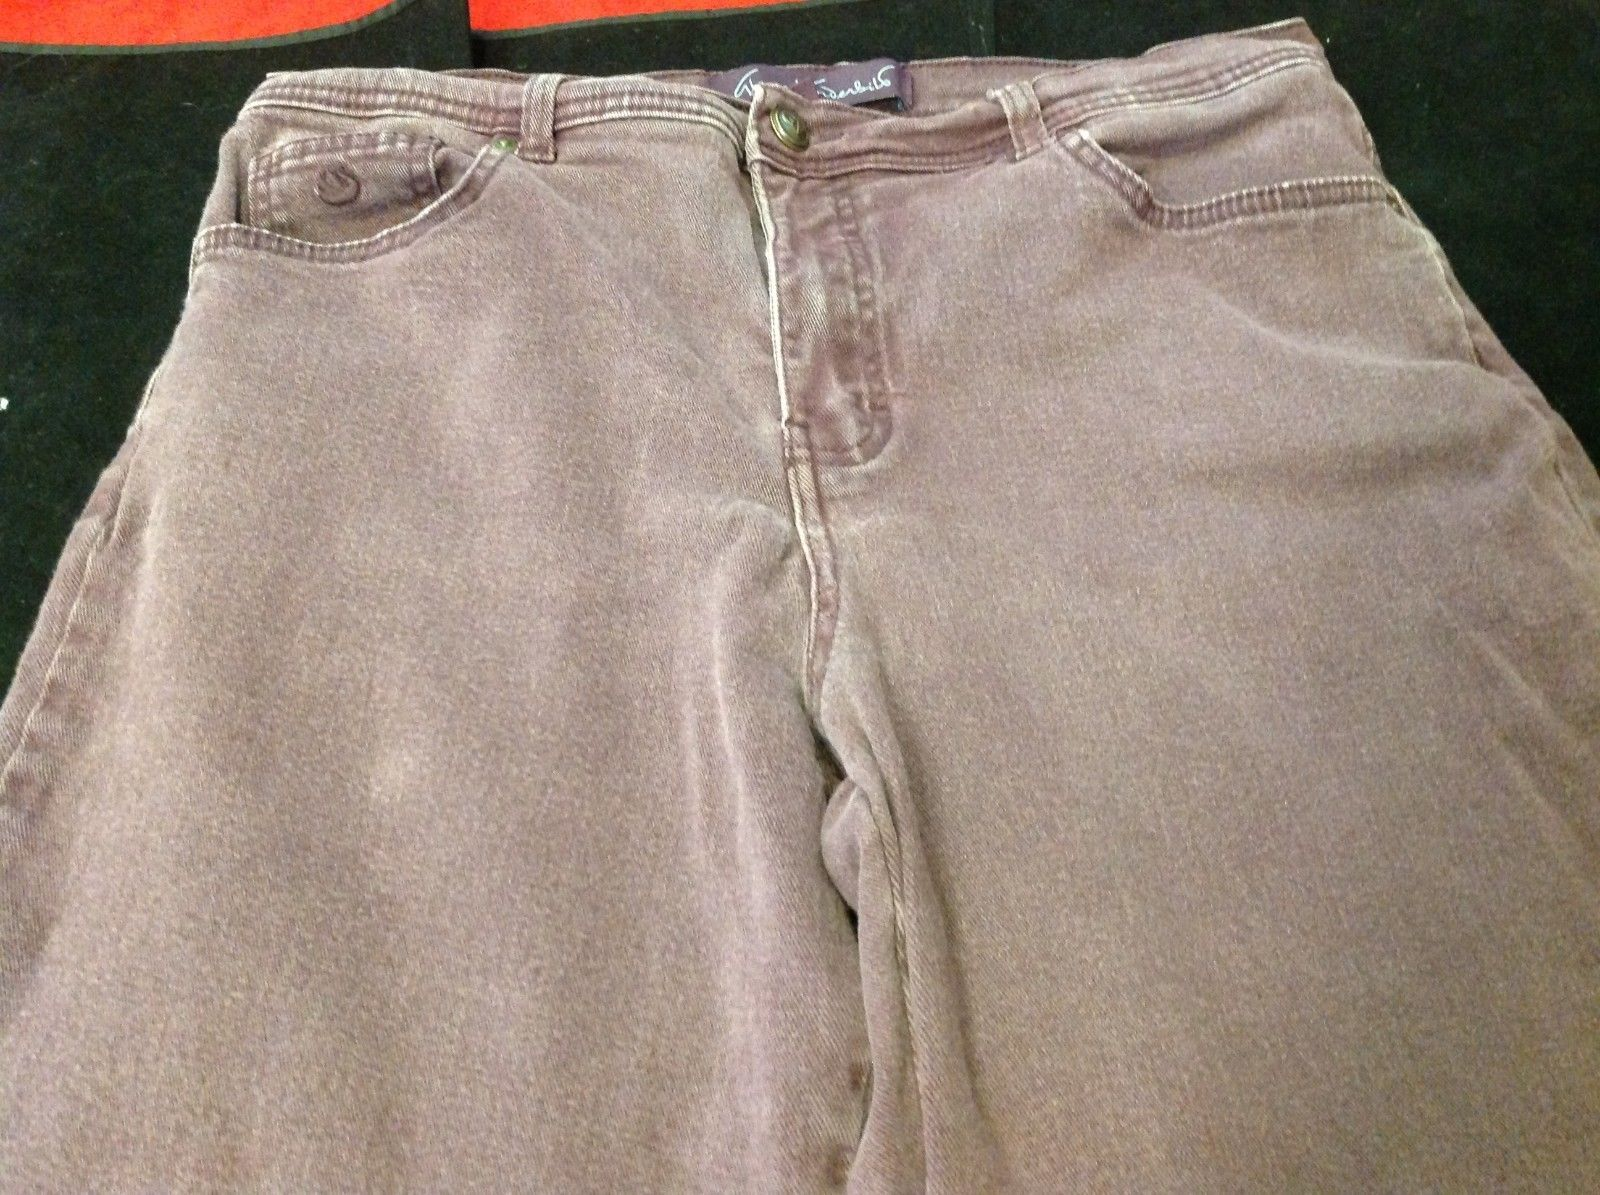 Gloria Vanderbilt Purple Jeans for woman size 12